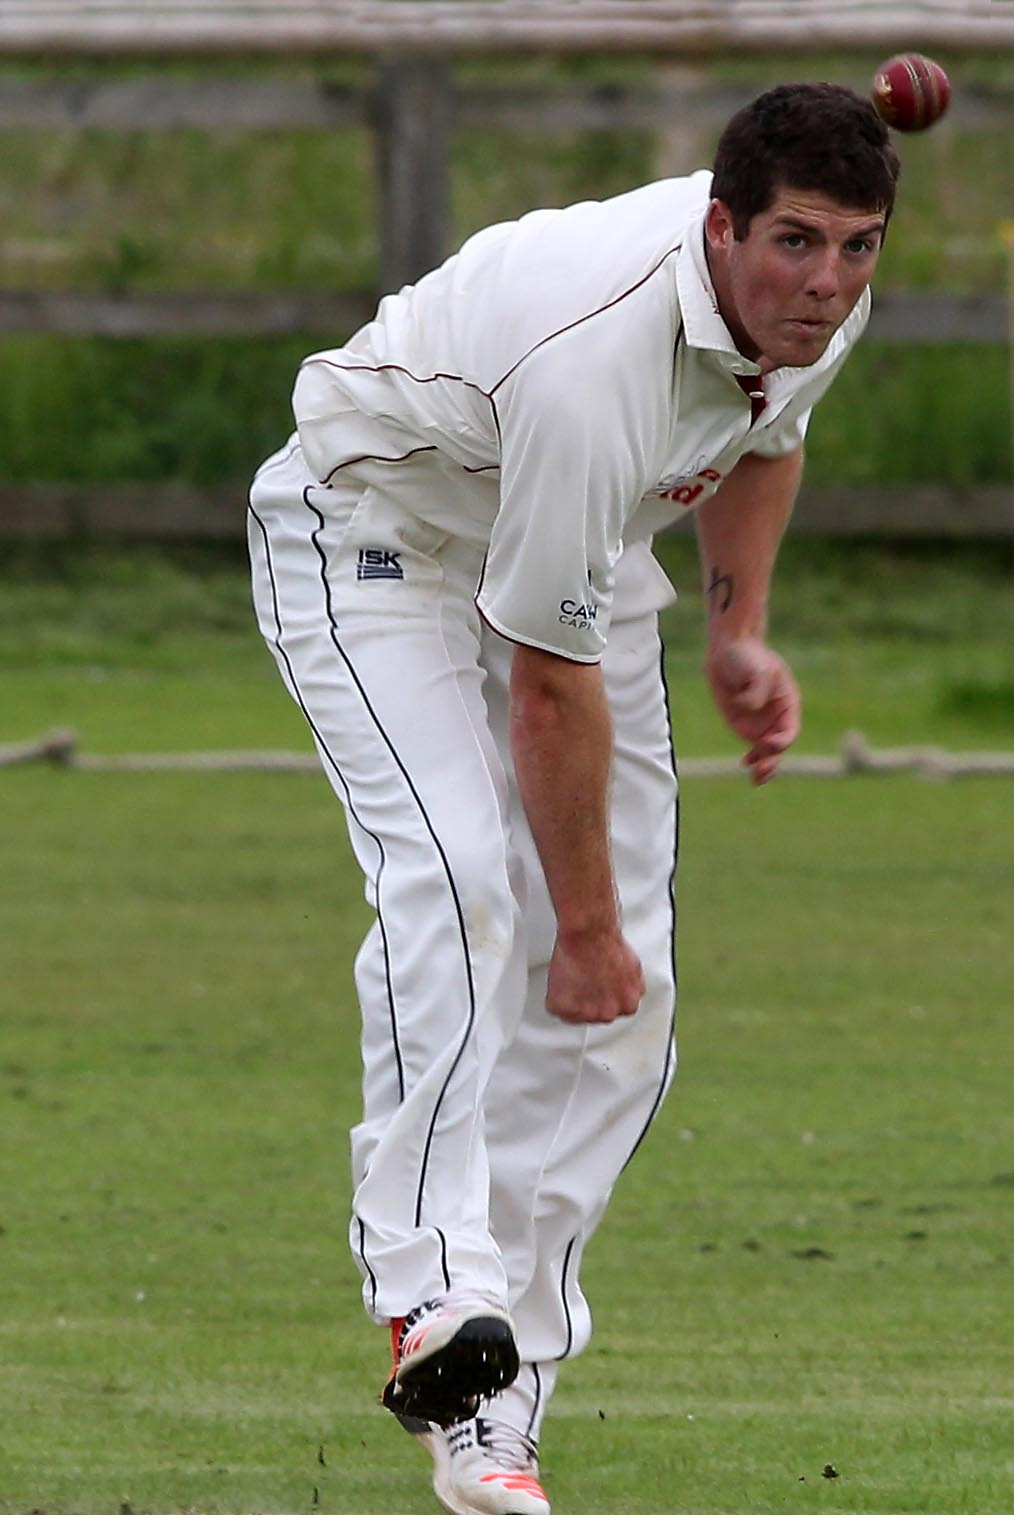 Liam Smith took three wickets in Lechlade's defeat to Bristol, which confirmed their relegation from Premier One